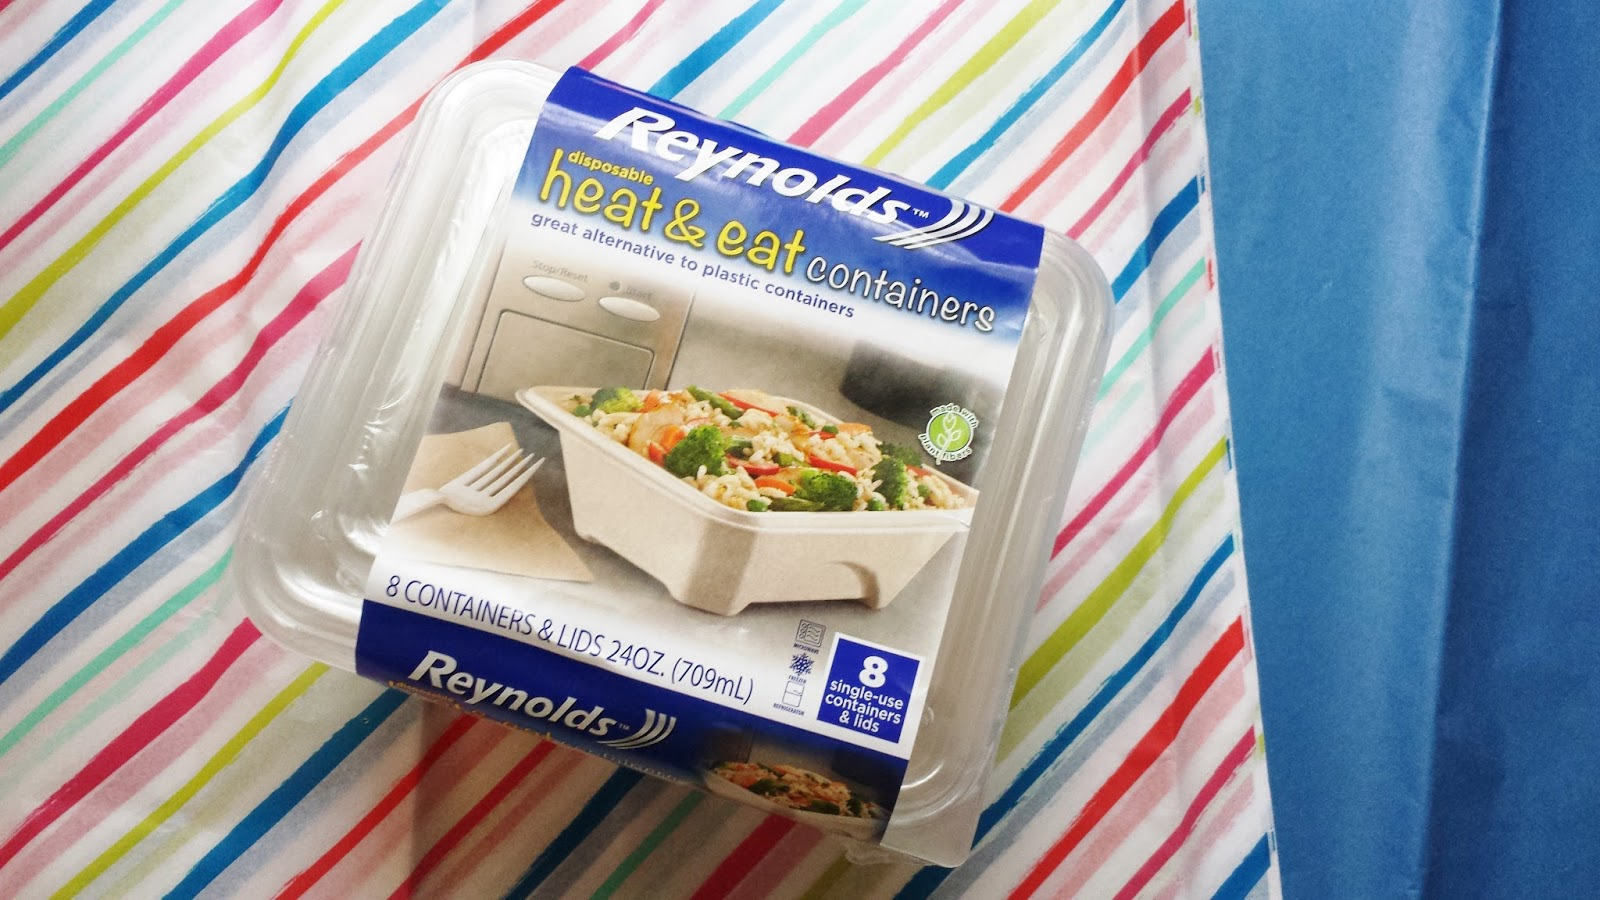 Reynolds™ Disposable Heat & Eat containers